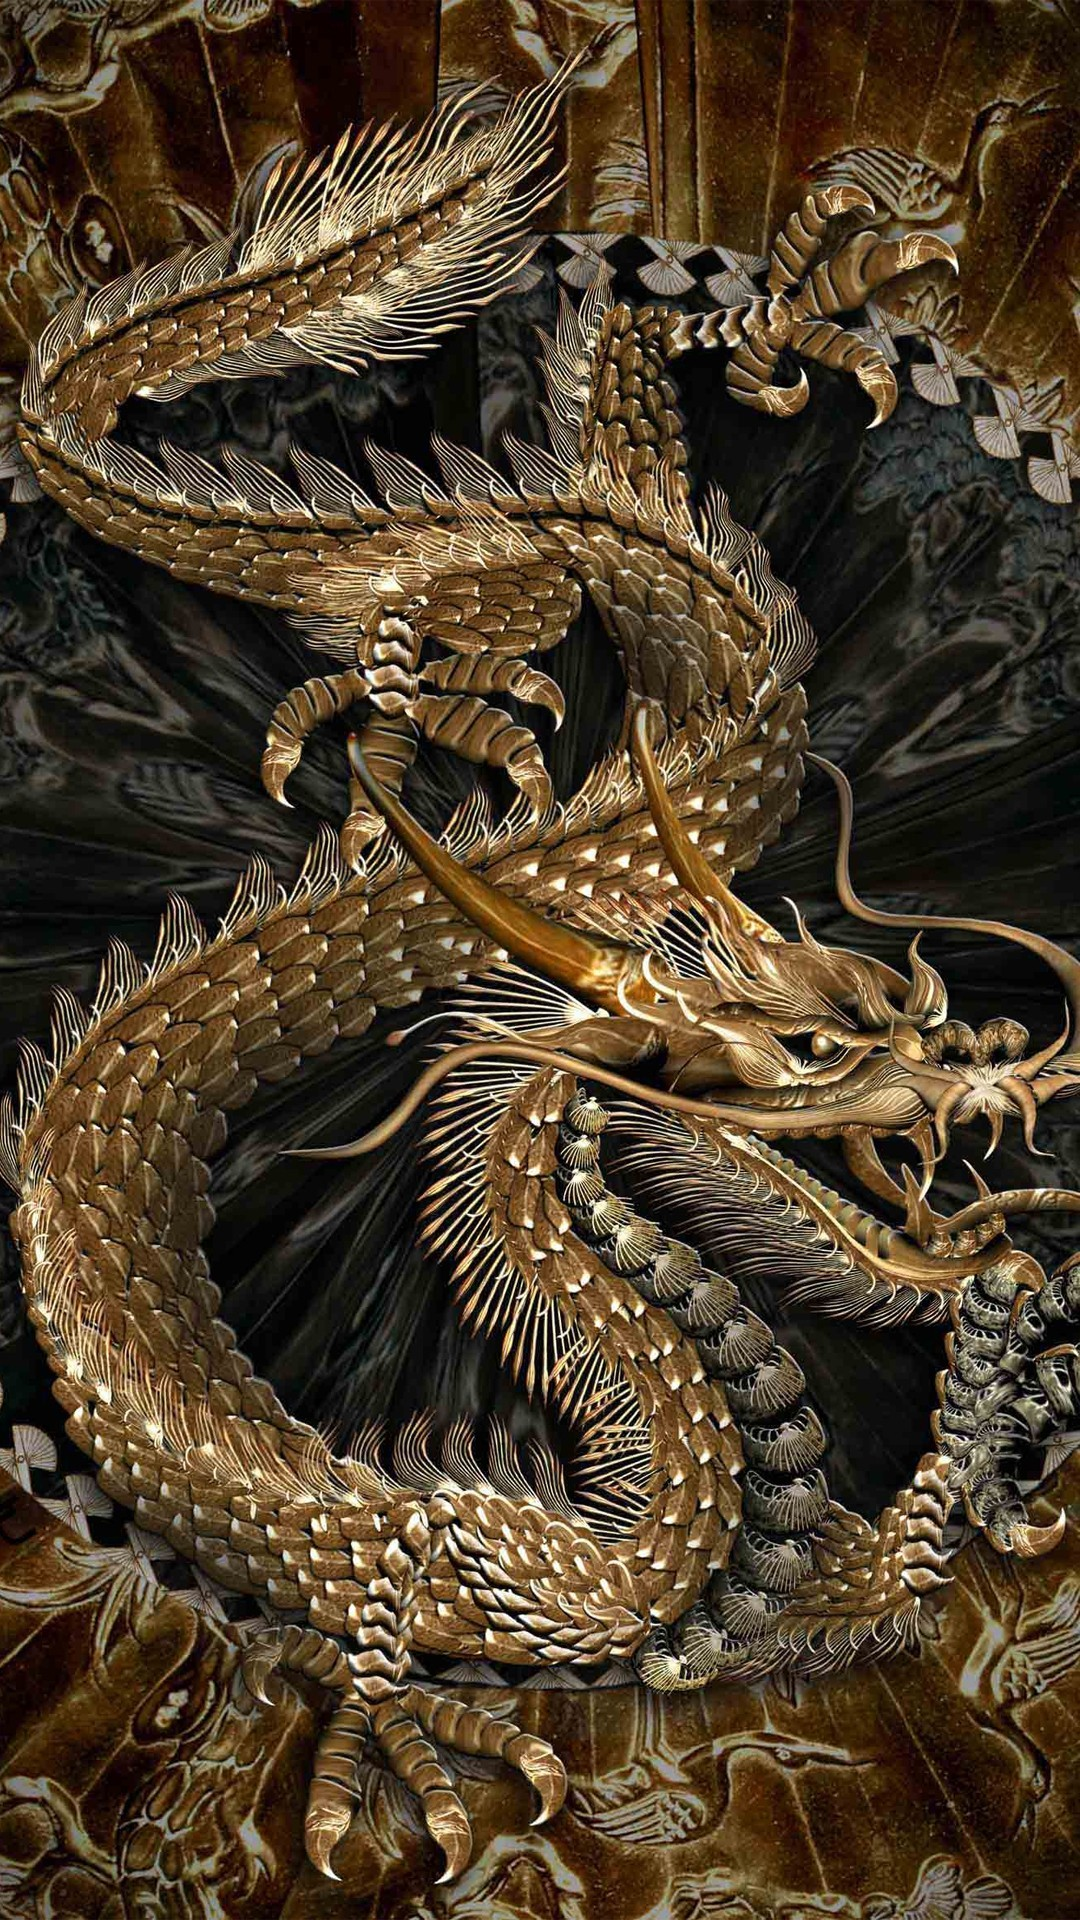 Dragon-Master-of-Mystical-Fire-is-the-oldest-and-wisest-spirit-animal-illuminating-collective%C3%A2%E2%82%AC-wallpaper-wp3405078